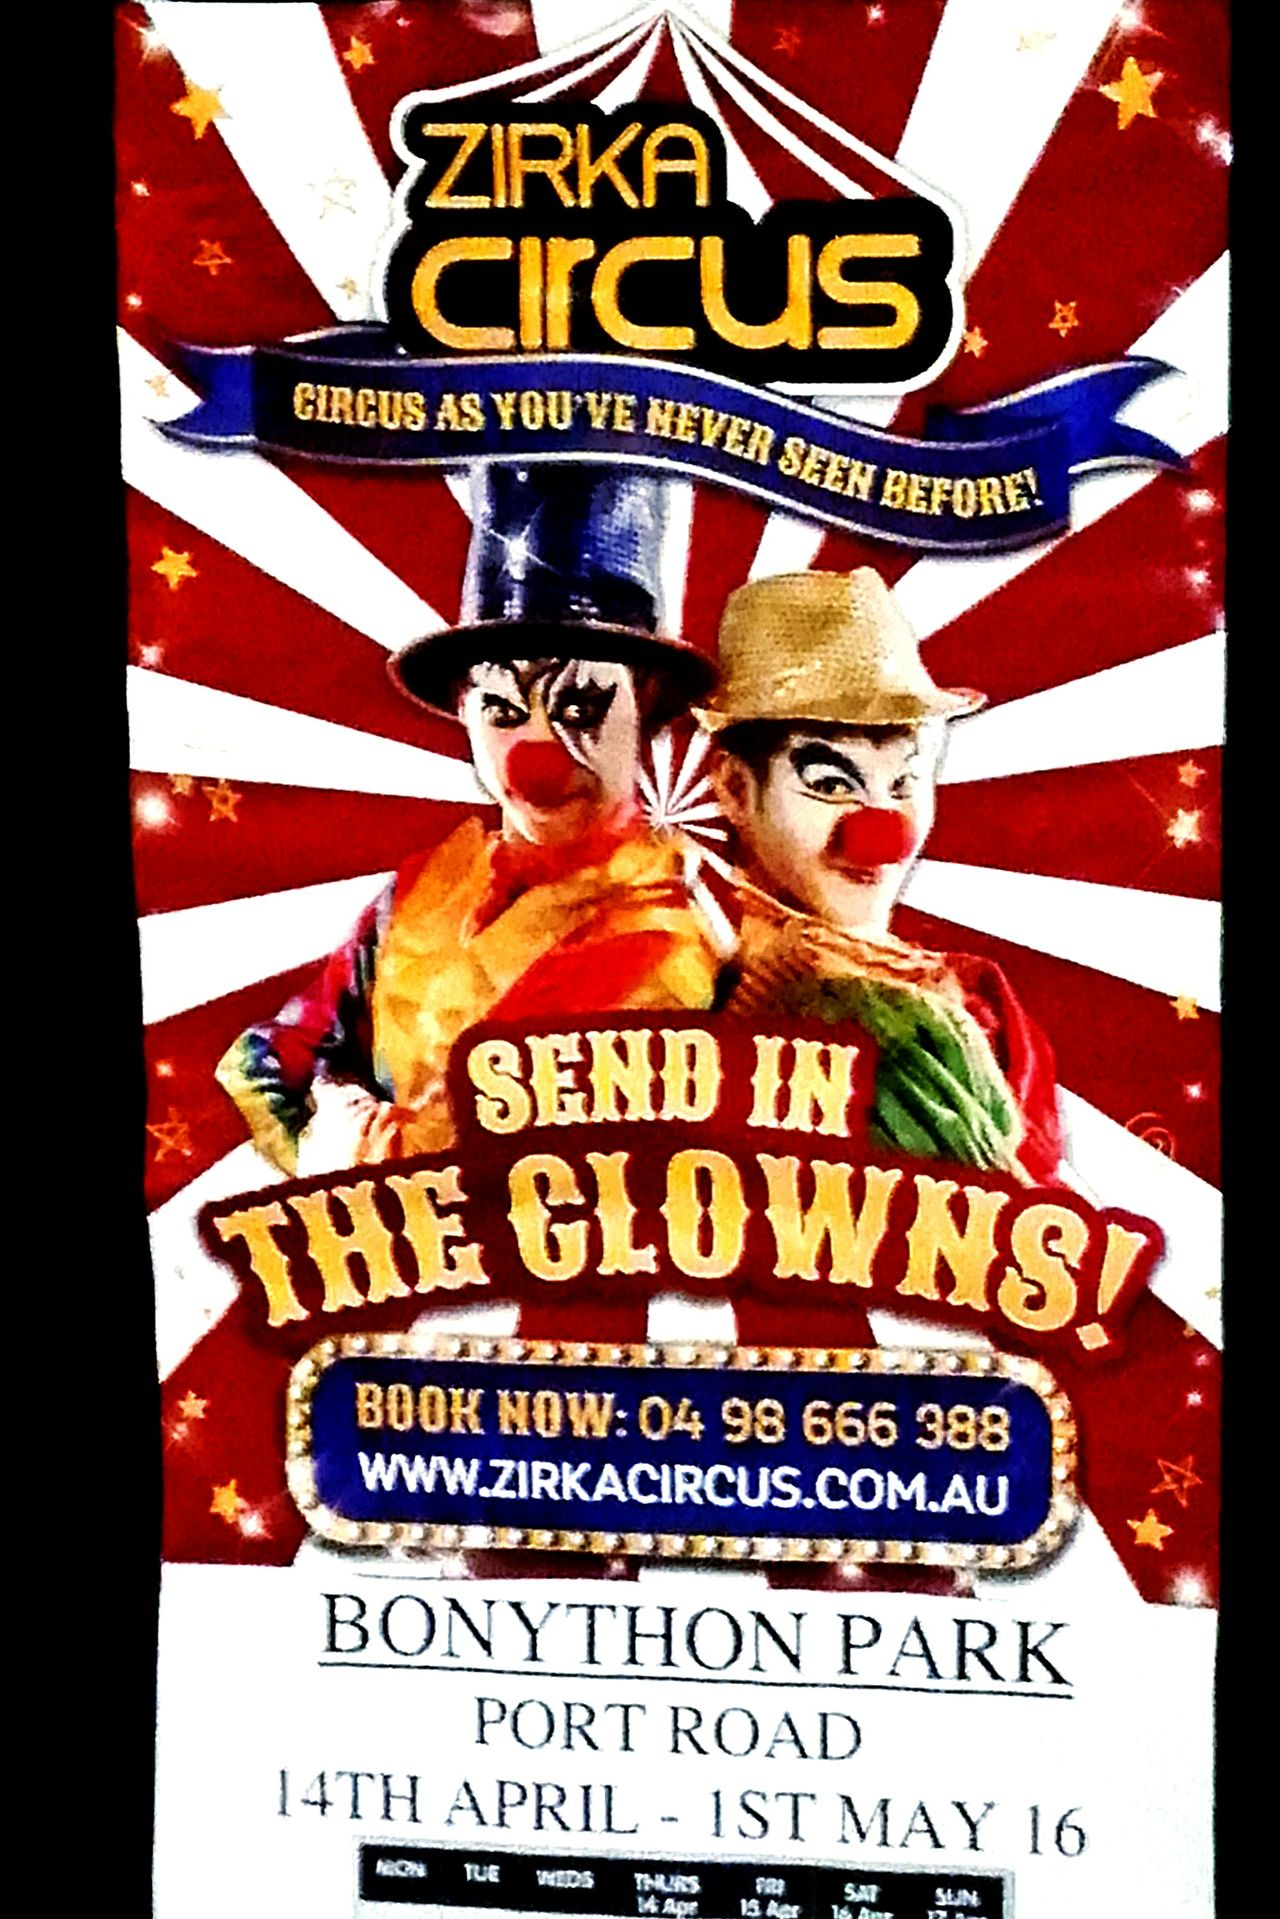 Circus Clowns Zirka Circus ZirkaCircus Send In The Clowns Sendintheclowns Color Posters Postercolor Wall Poster Poster Wall Advertisingposters Posterporn Postercollection Poster Art Poster Advertisement Posters Posterart Posterwall Posters Advertisement Signage Poster Collection Circus Posters Circusposter Circus Poster Colour Posters